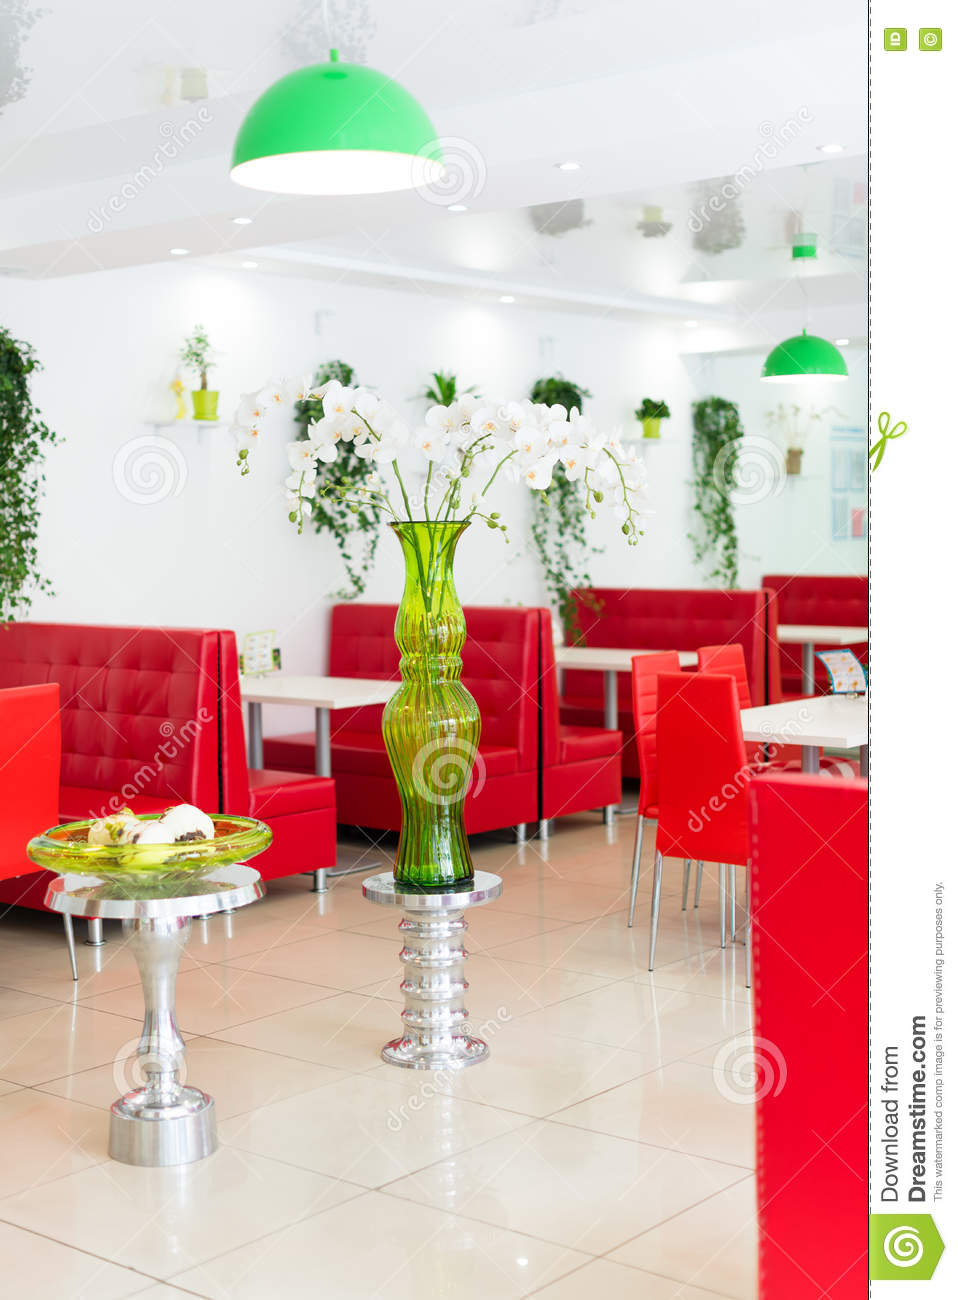 modern design restaurant interior in white and red colors with